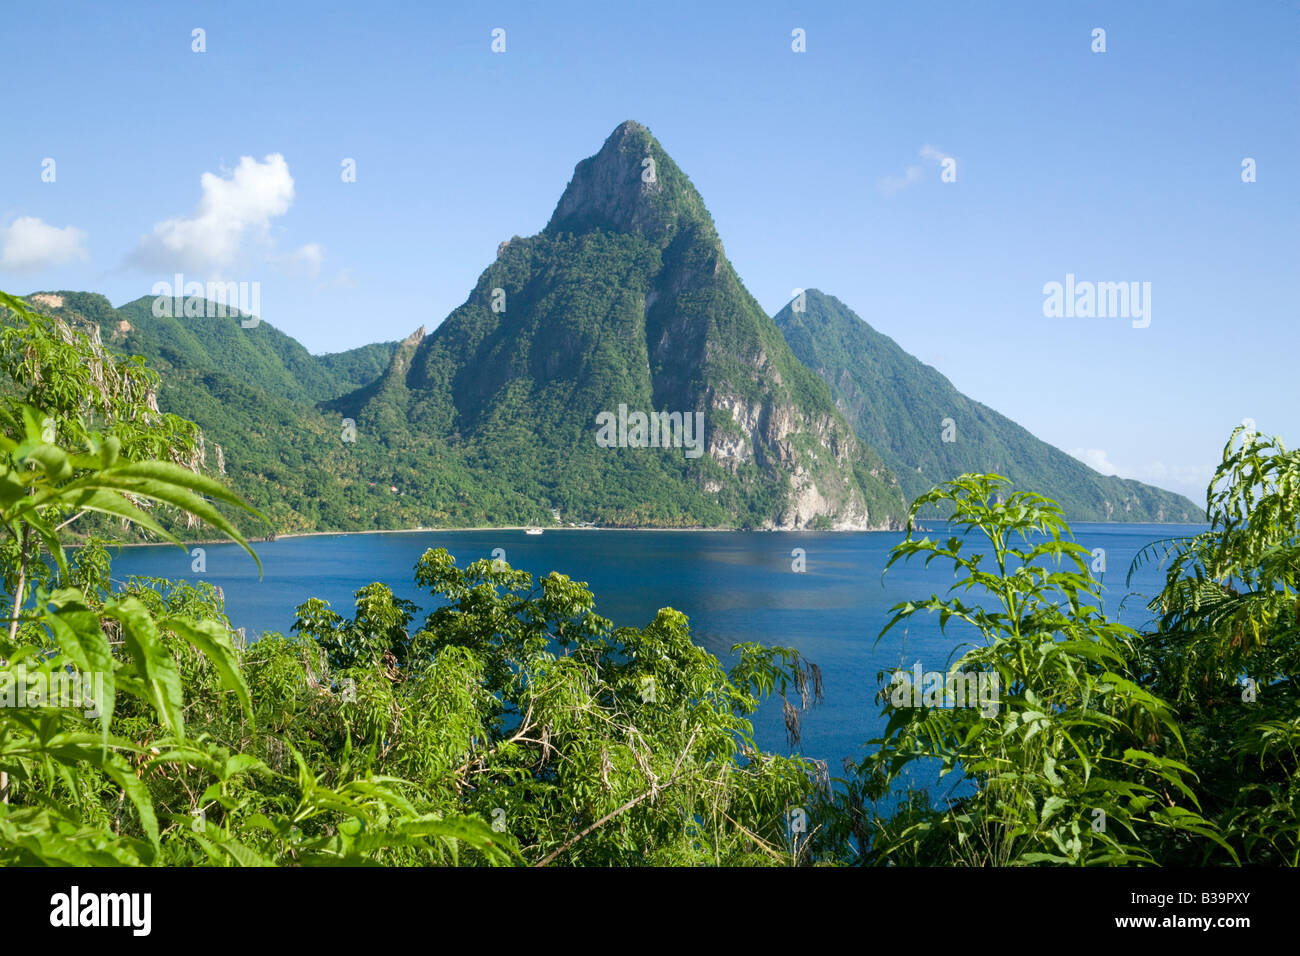 Pitons St Lucia; i pitons vista osservata attraverso Soufriere Bay, St Lucia, isole Windward, West Indies Caraibi Foto Stock